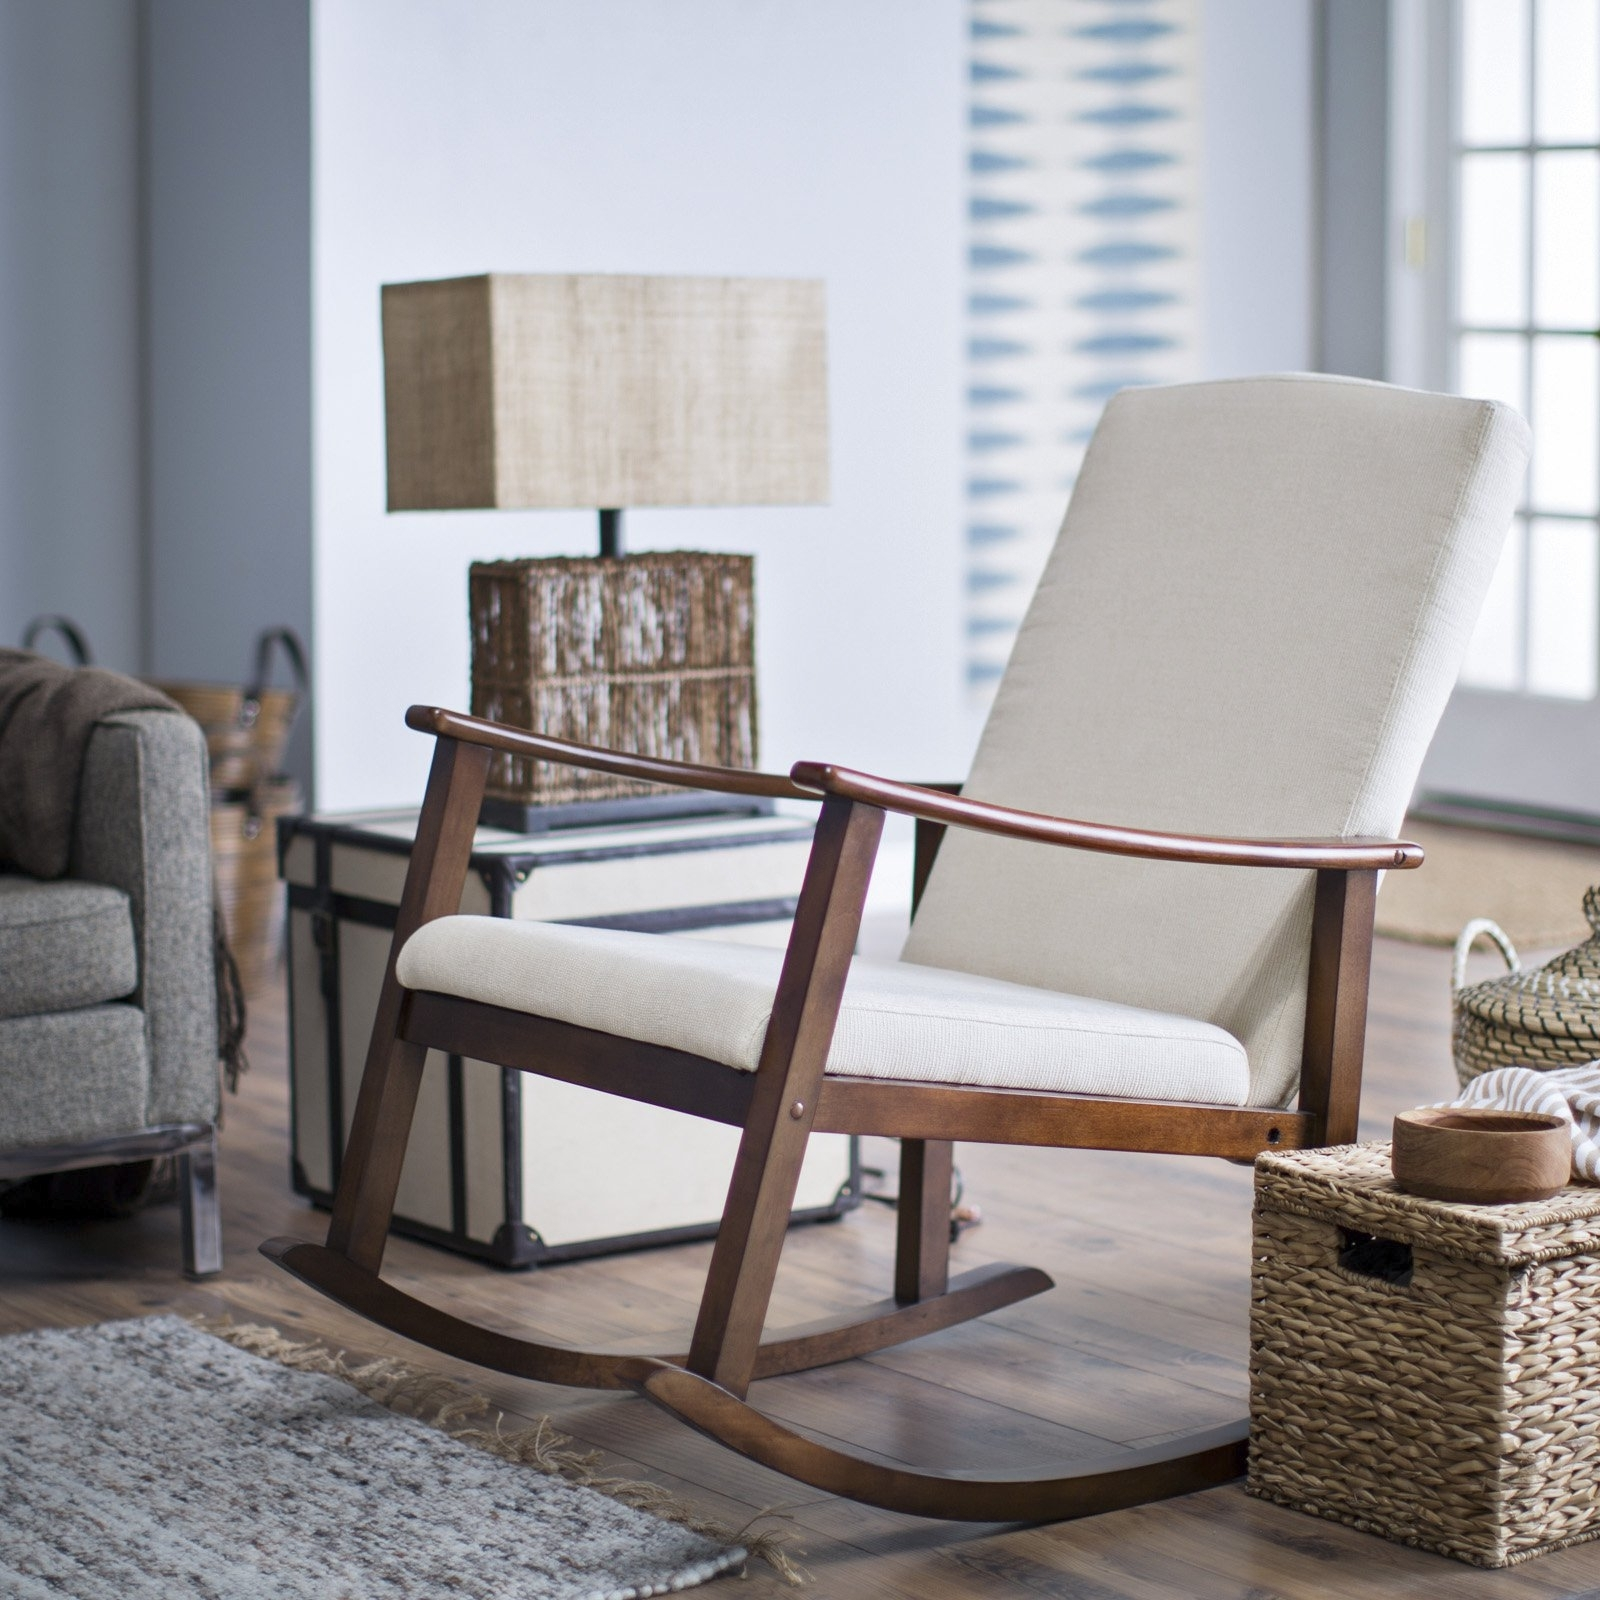 Belham Living Holden Modern Indoor Rocking Chair – Upholstered Regarding Most Current Rocking Chairs For Living Room (View 5 of 15)